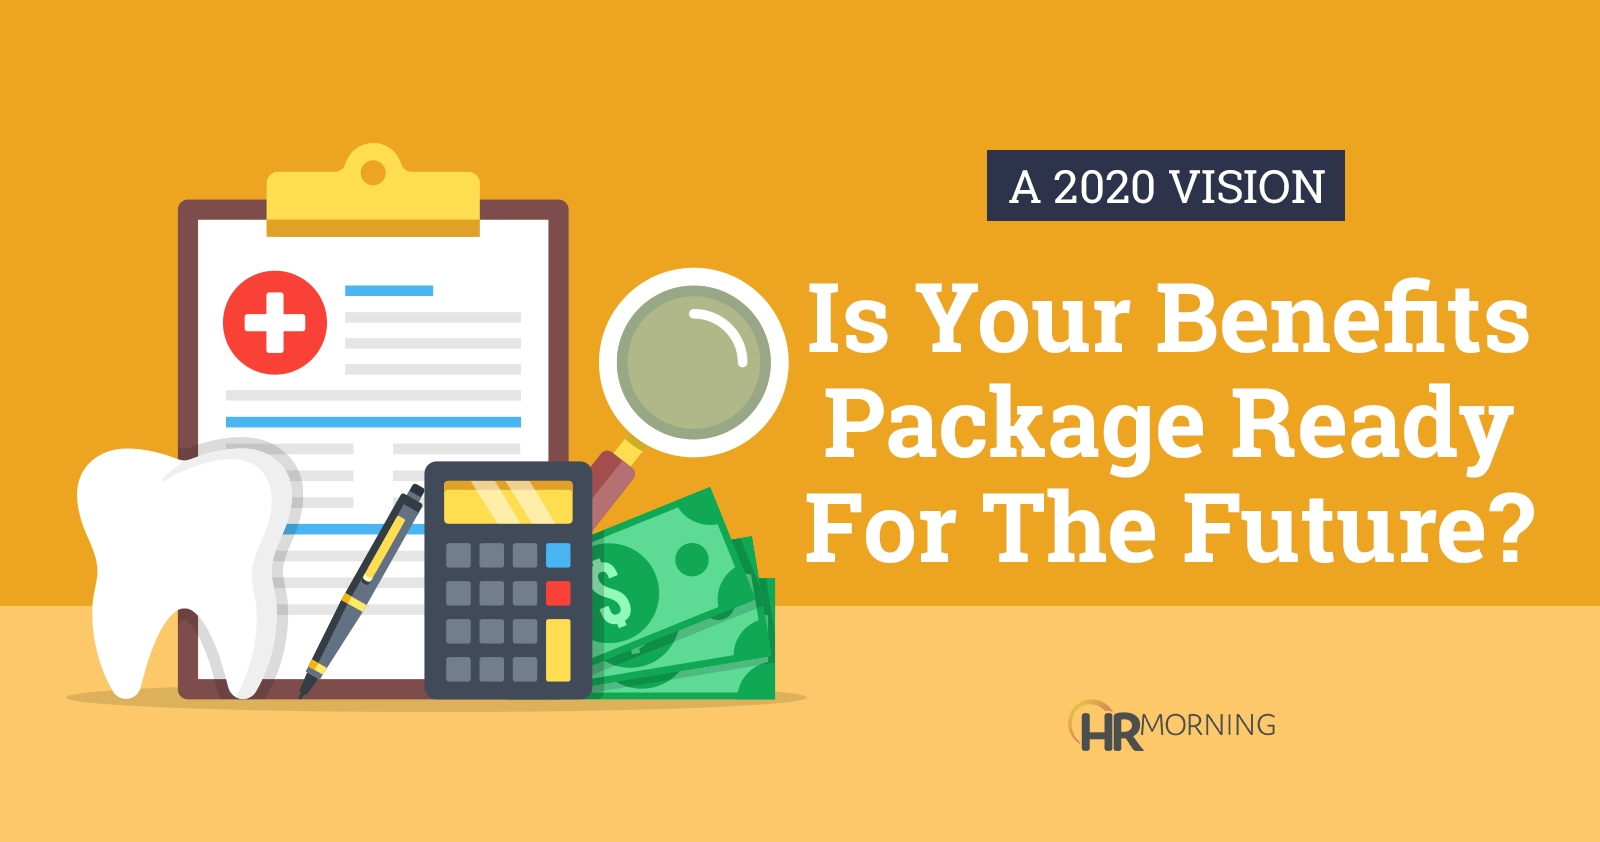 A 2020 Vision: Is Your Benefits Package Ready For The Future-Monthly Wellness Topics 2020